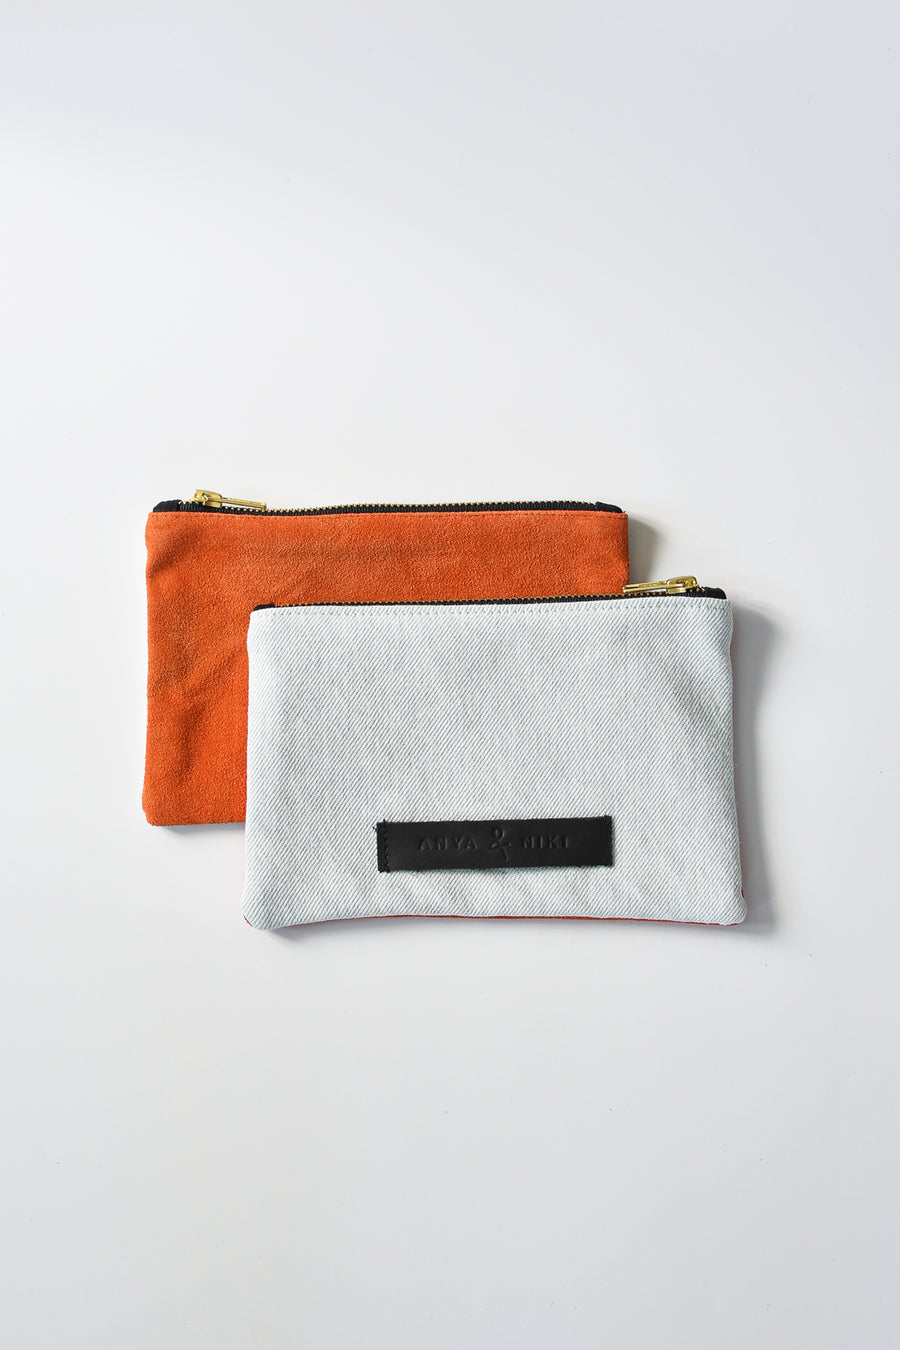 Washed denim and orange suede small pouch with brass zipper and leather logo label.